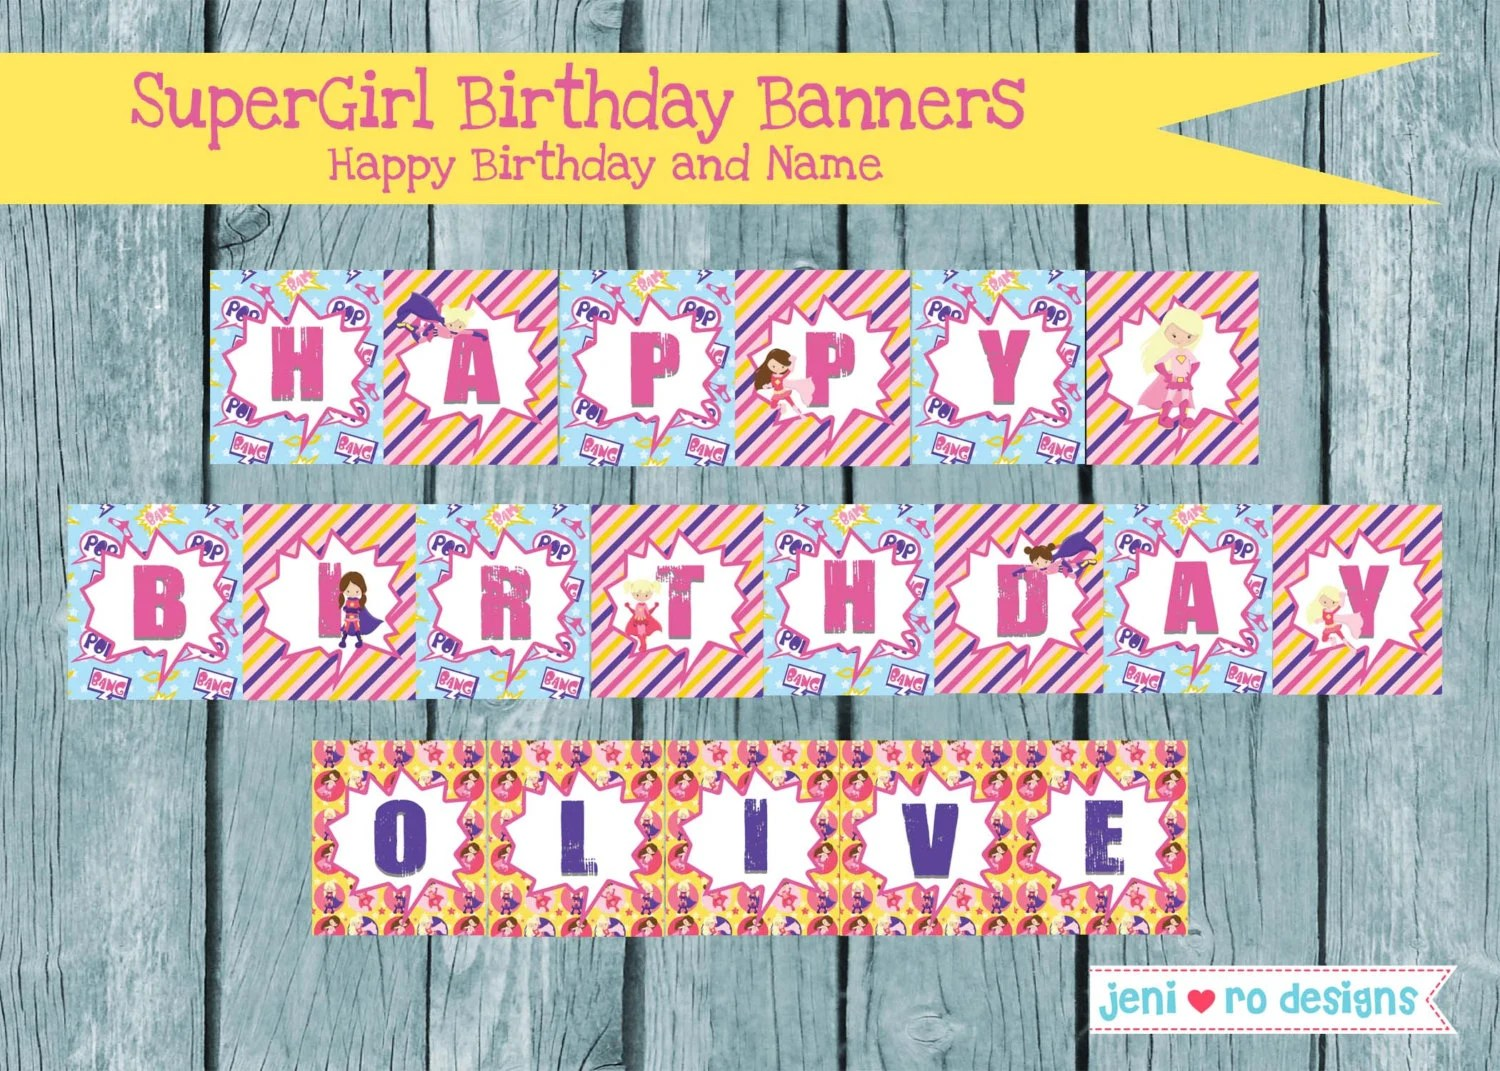 SuperGirl Birthday printable Banners - Happy Birthday and Name